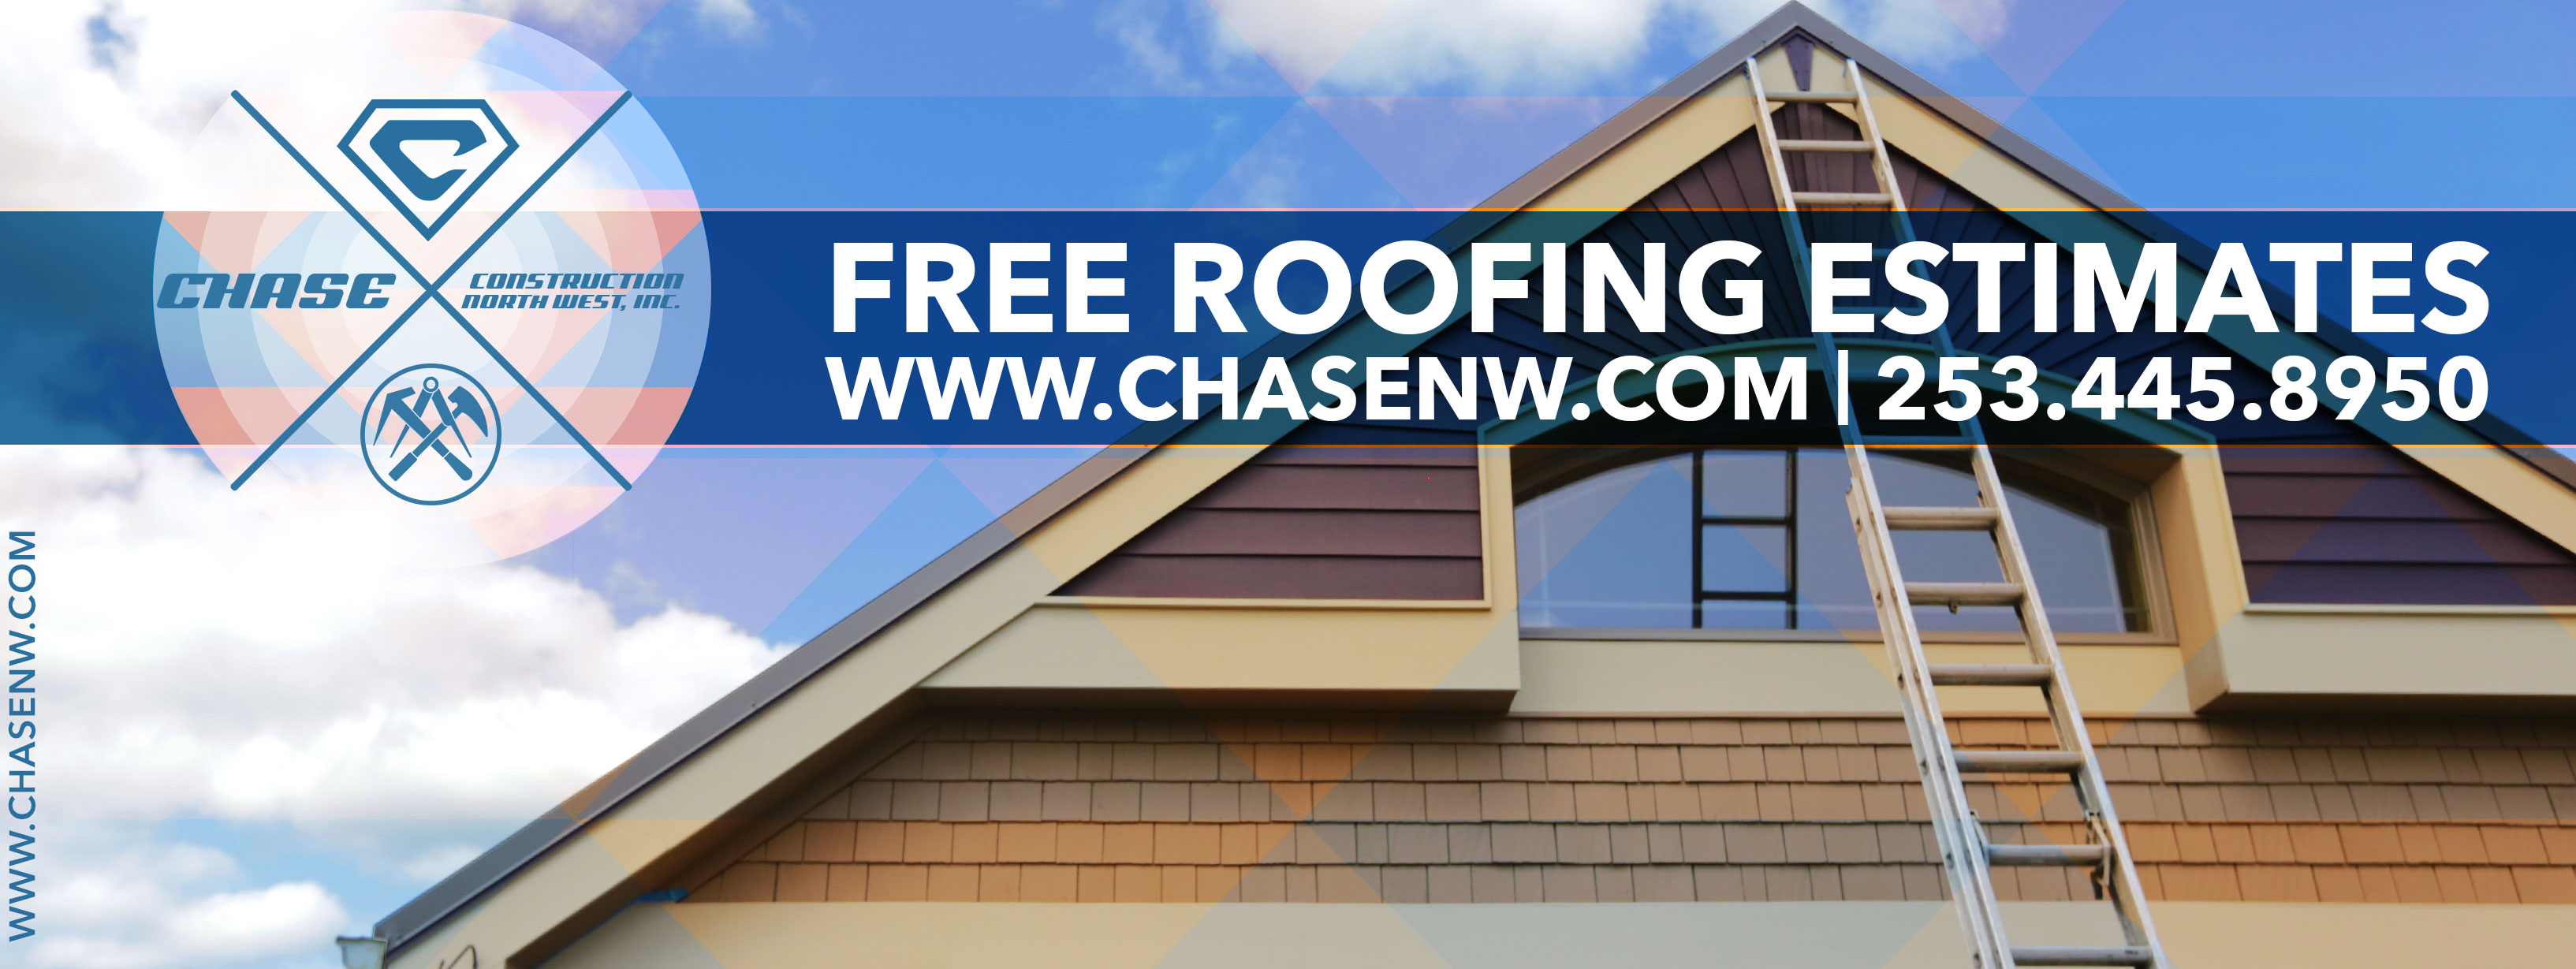 Free Roofing Estimates 253.445.8950 www.chasenw.com